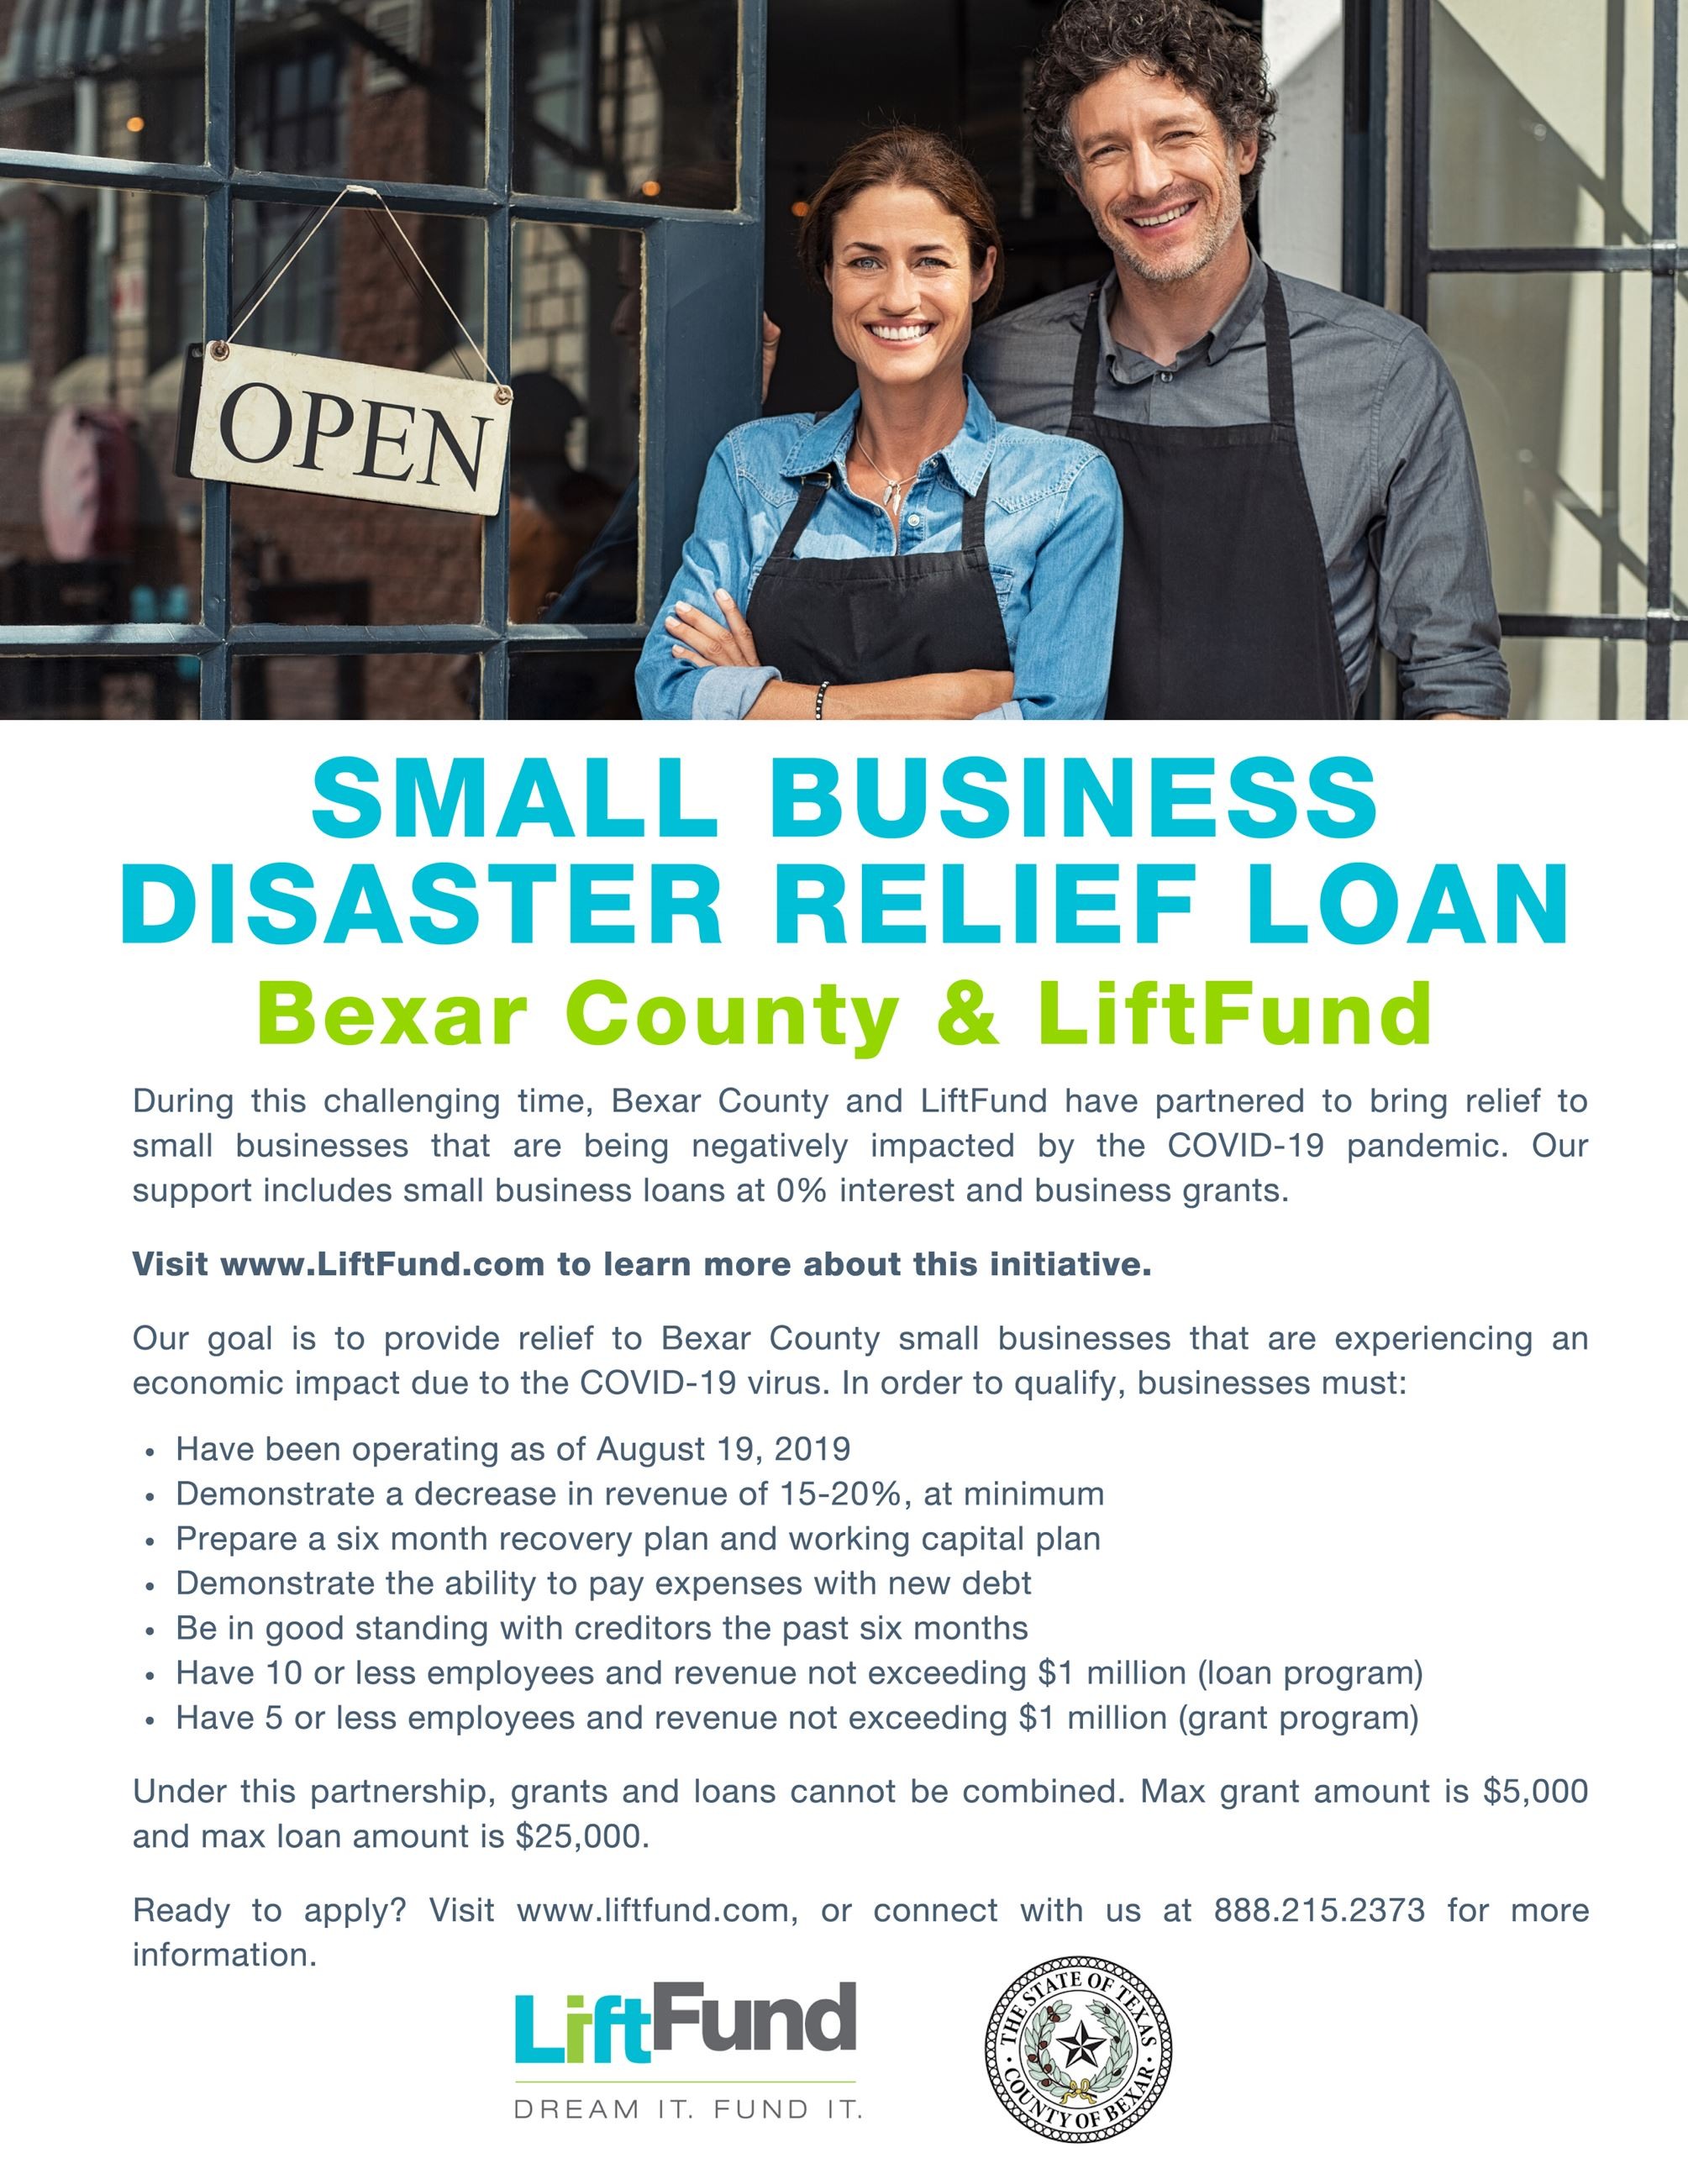 Small Business Disaster Relief Bexar County and LiftFund Flyer 2020-1